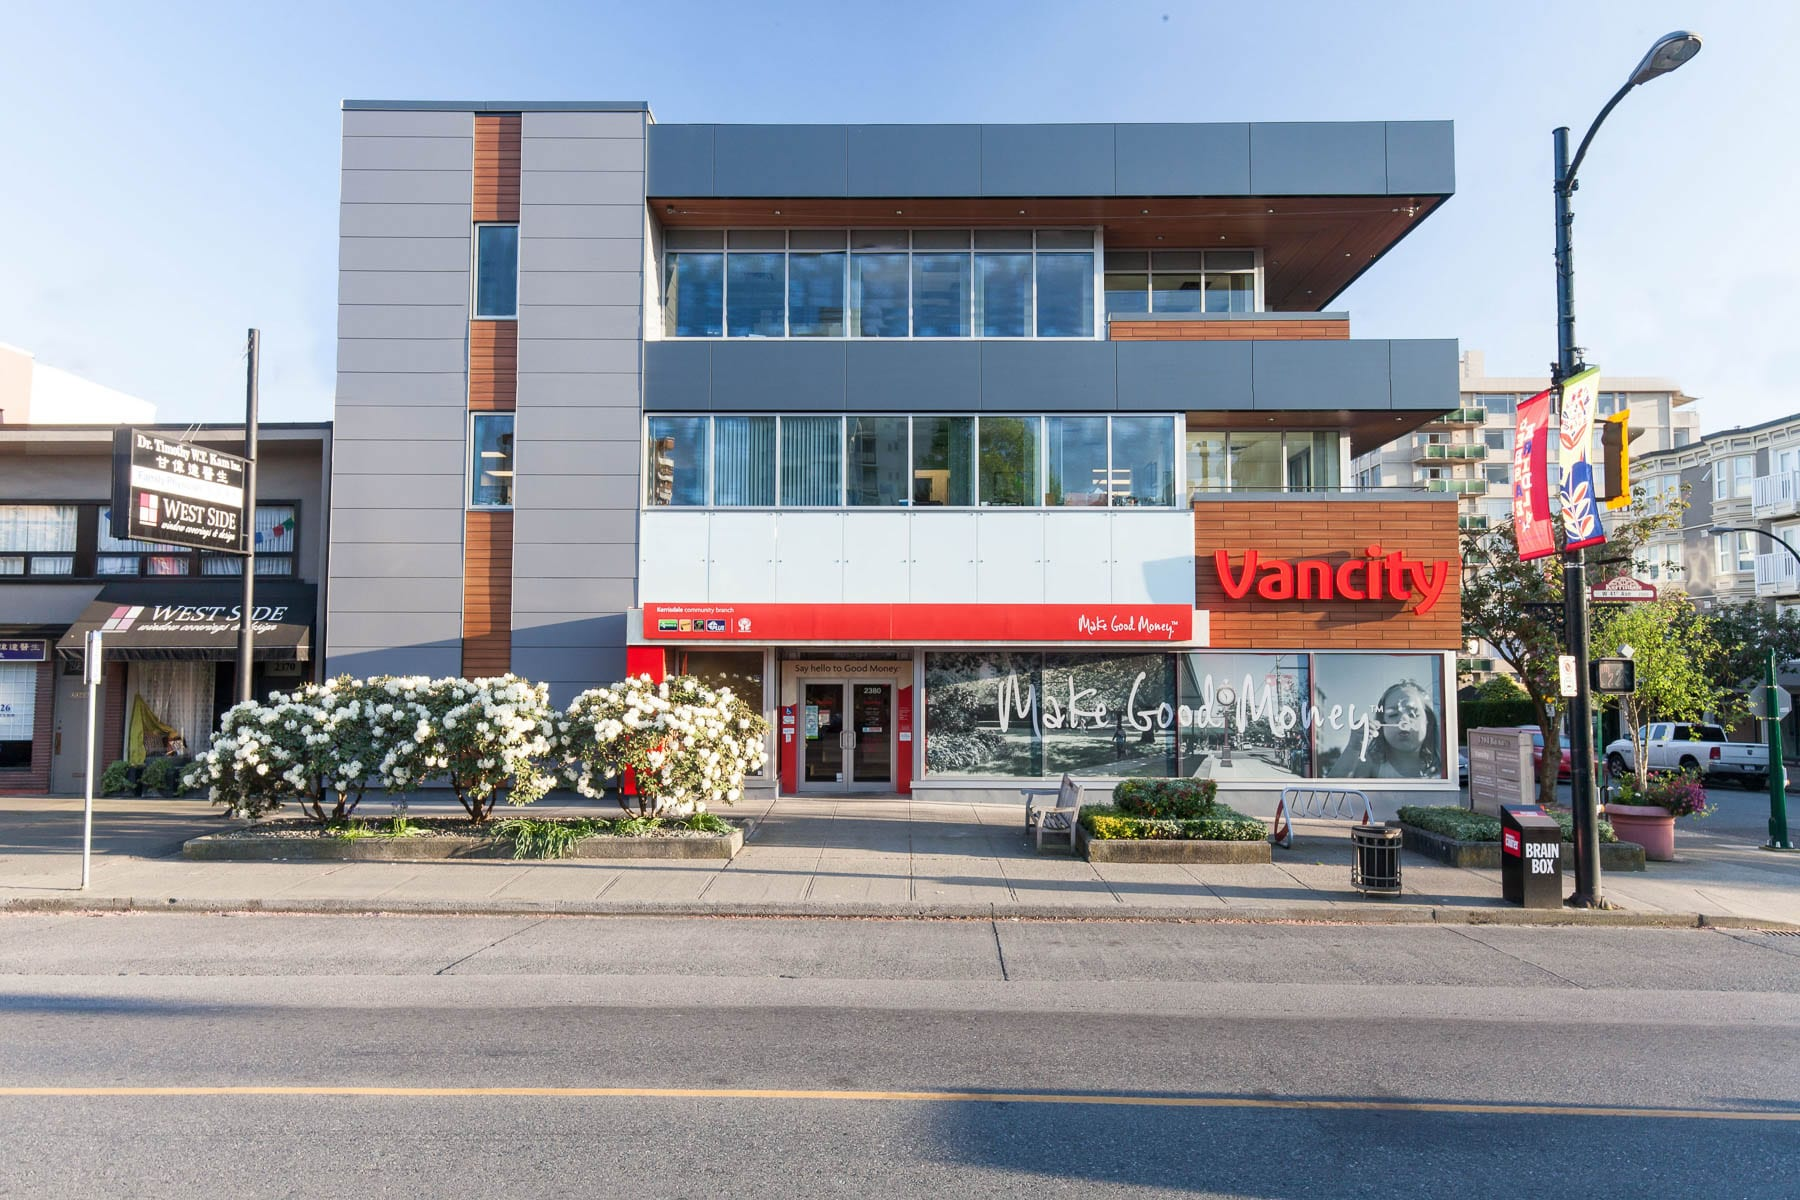 Vancity bank tenant improvement and Balsam building roofing, finishes upgrades